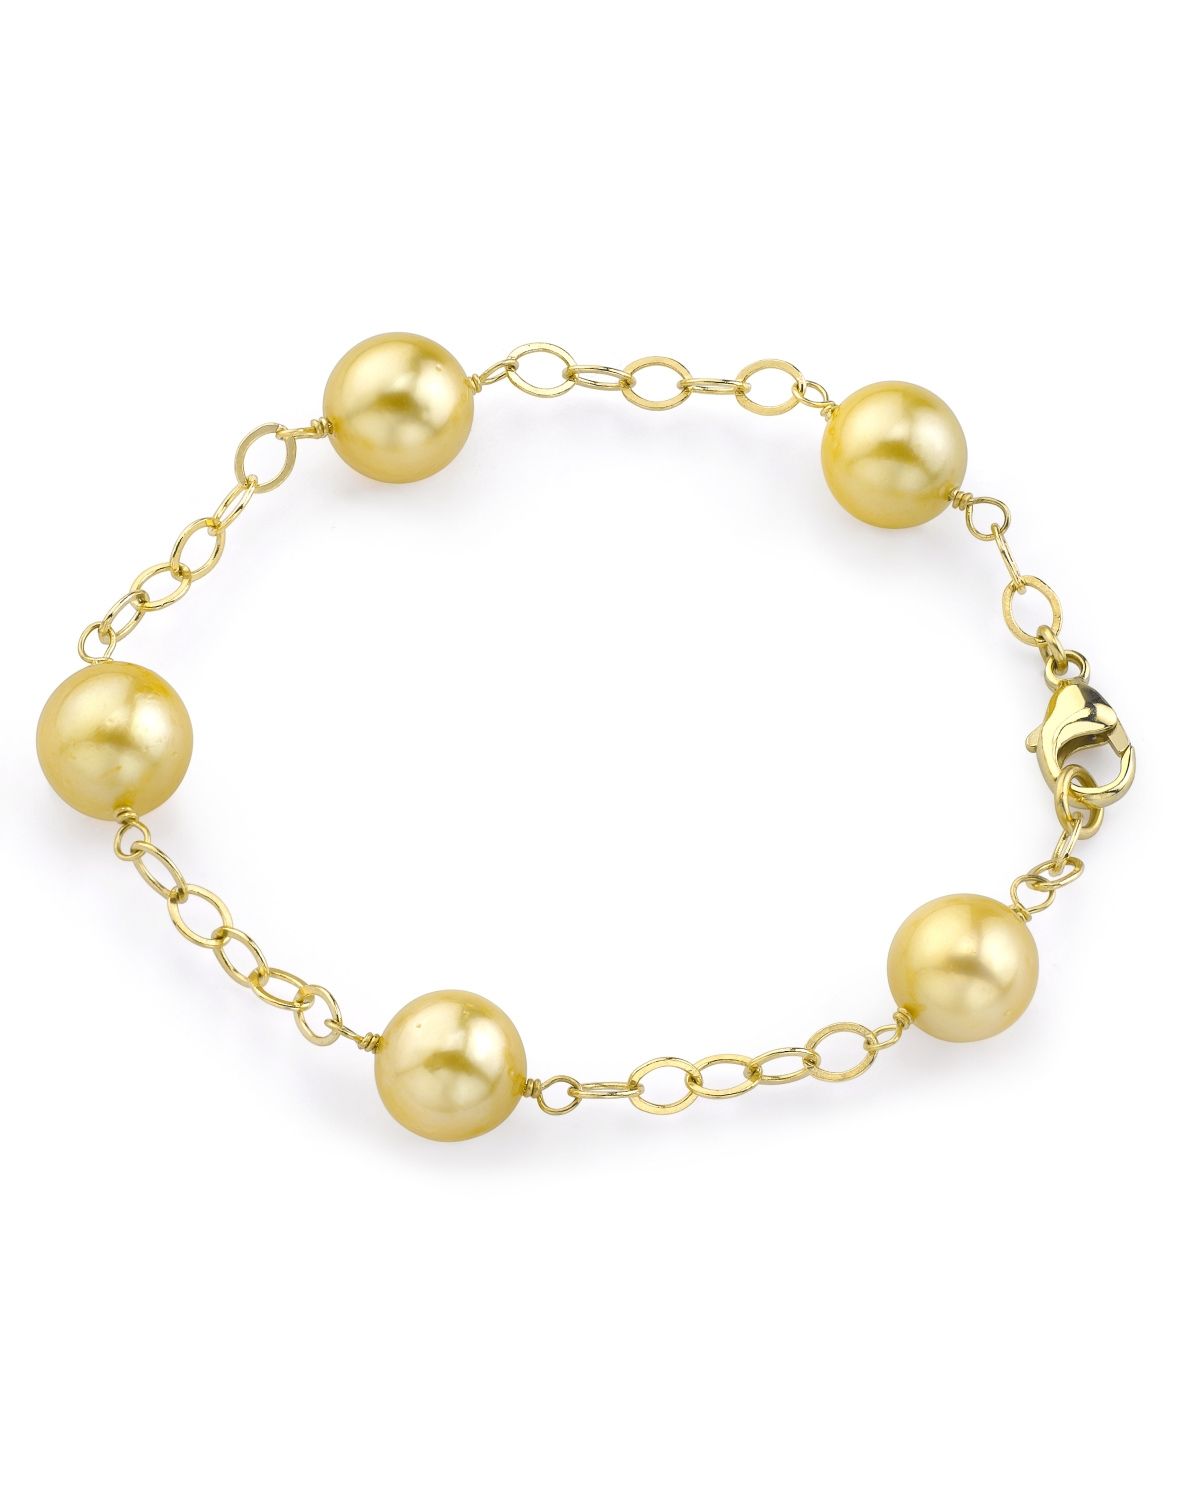 4c1a8b63f8060 9-10mm Golden South Sea Pearl Tincup Bracelet